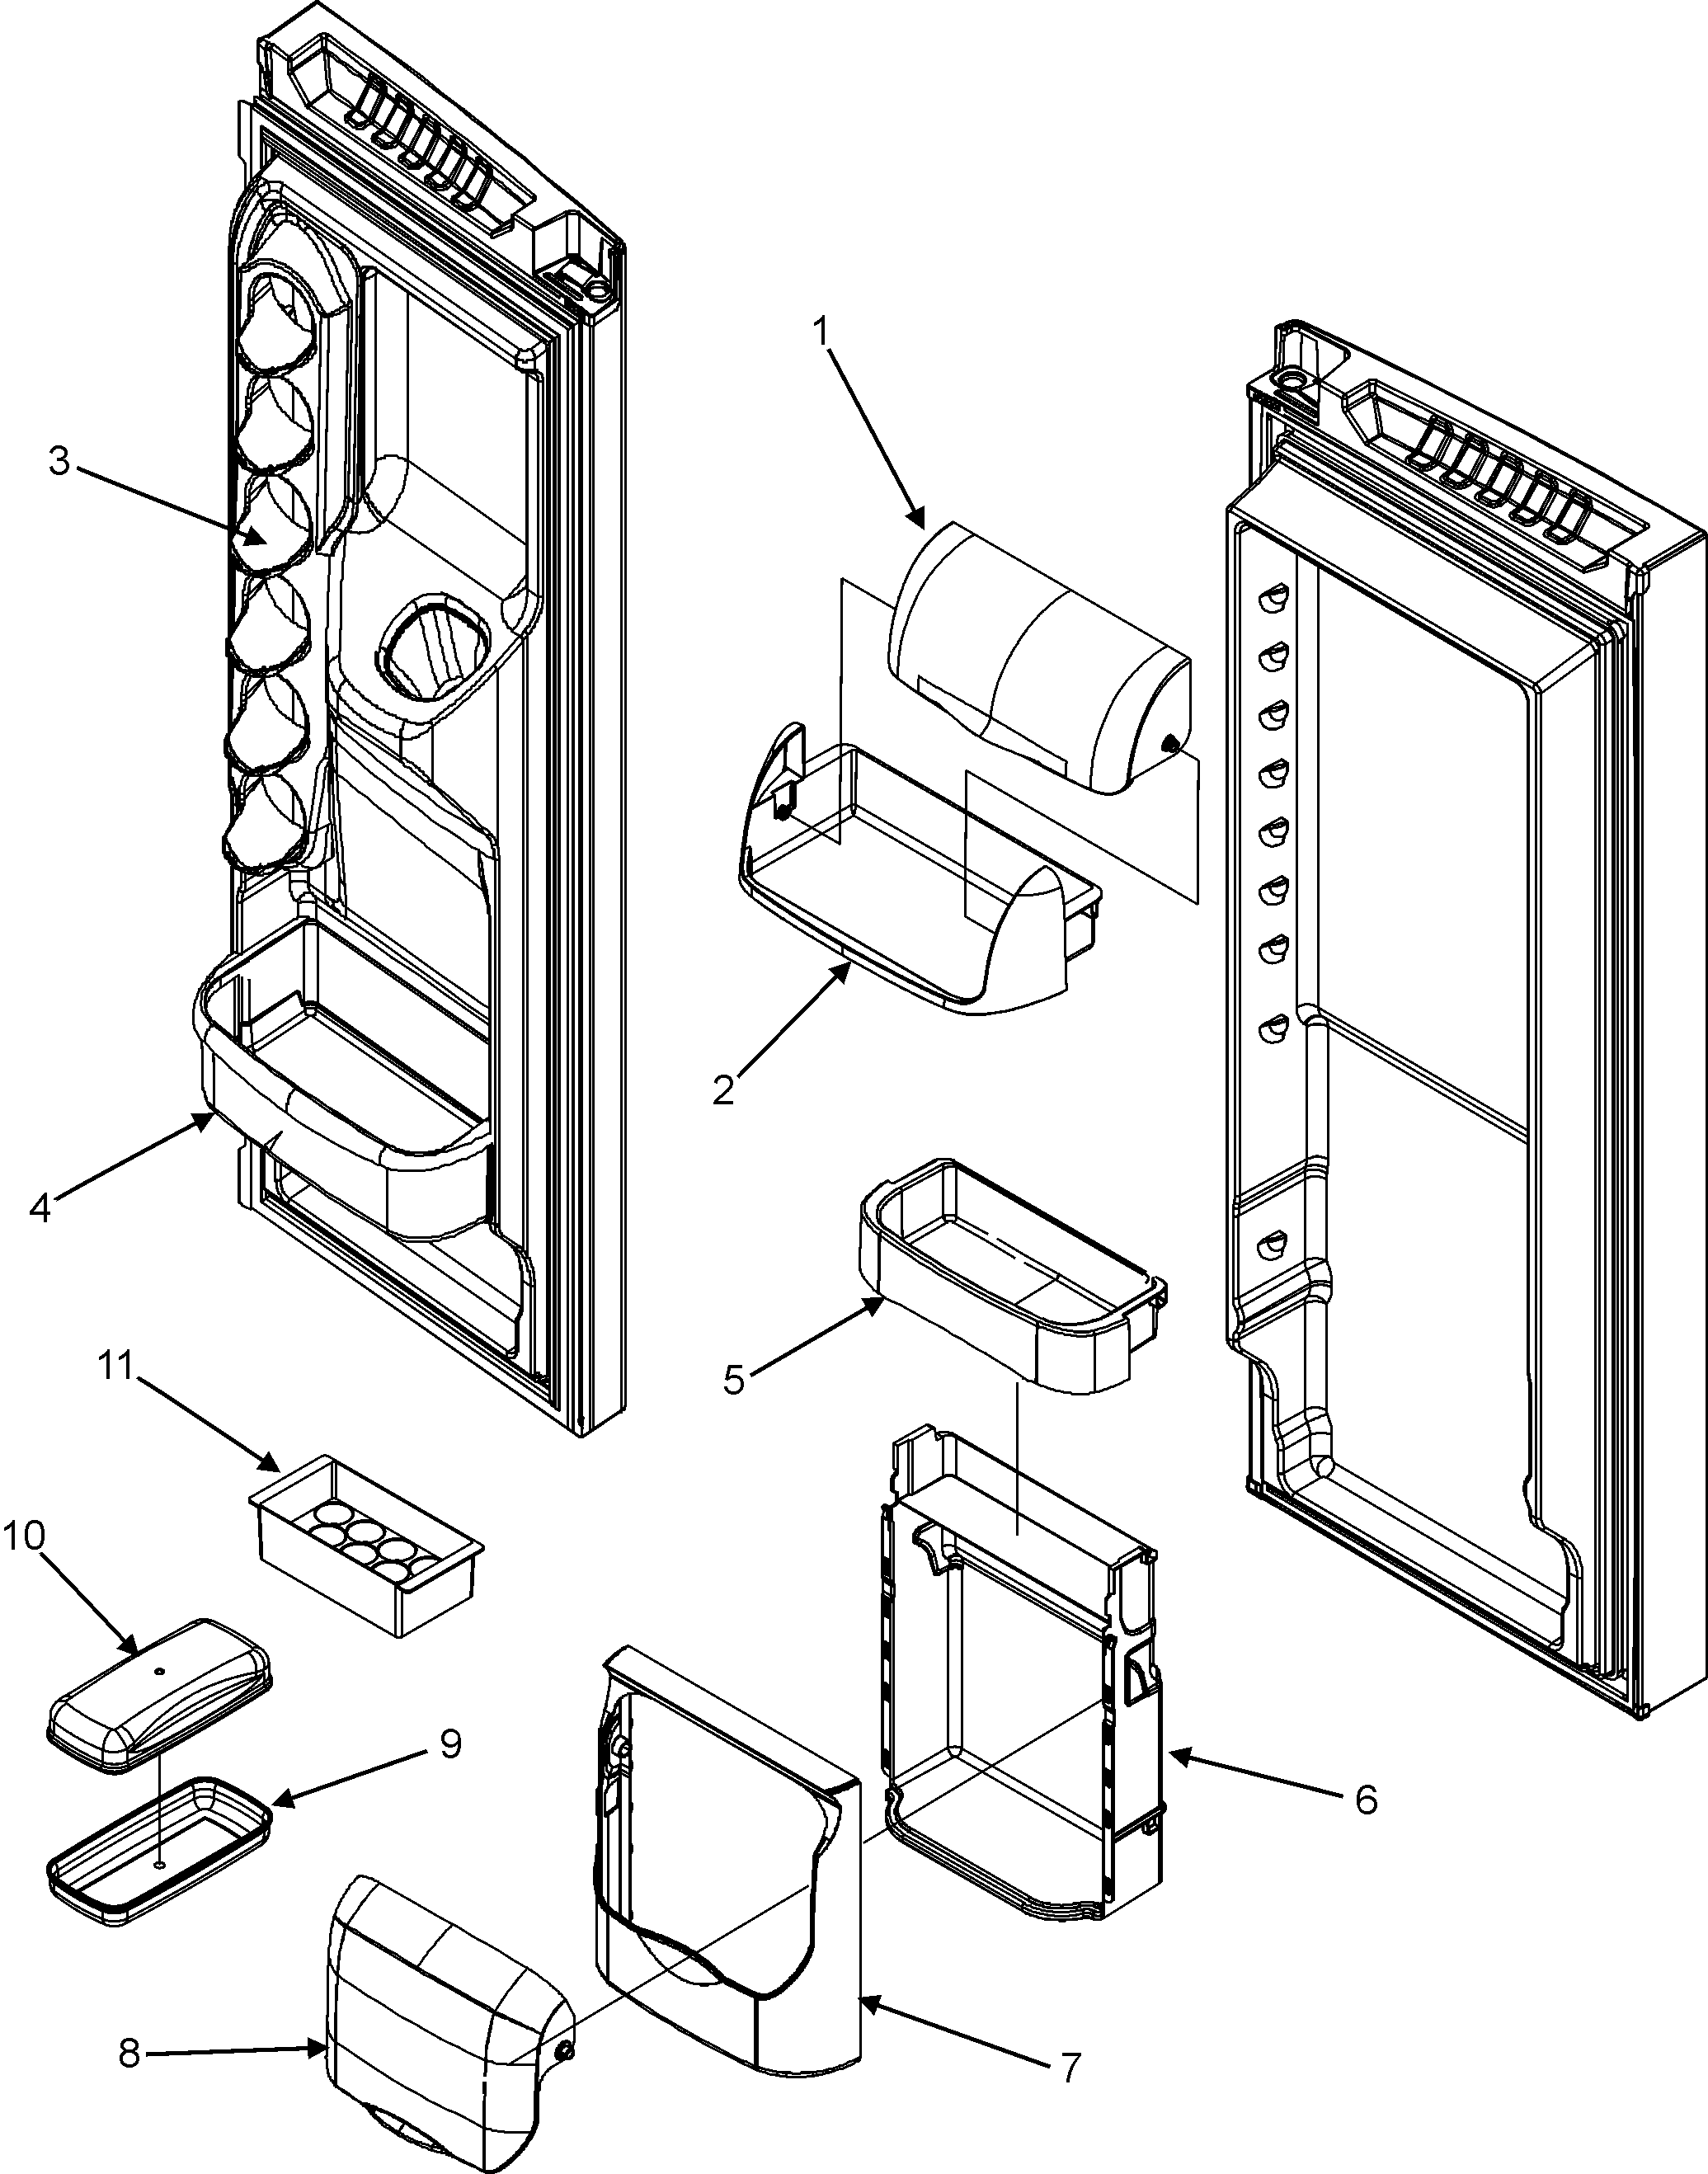 REF DOOR STORAGE Diagram & Parts List for Model mfi2568aes